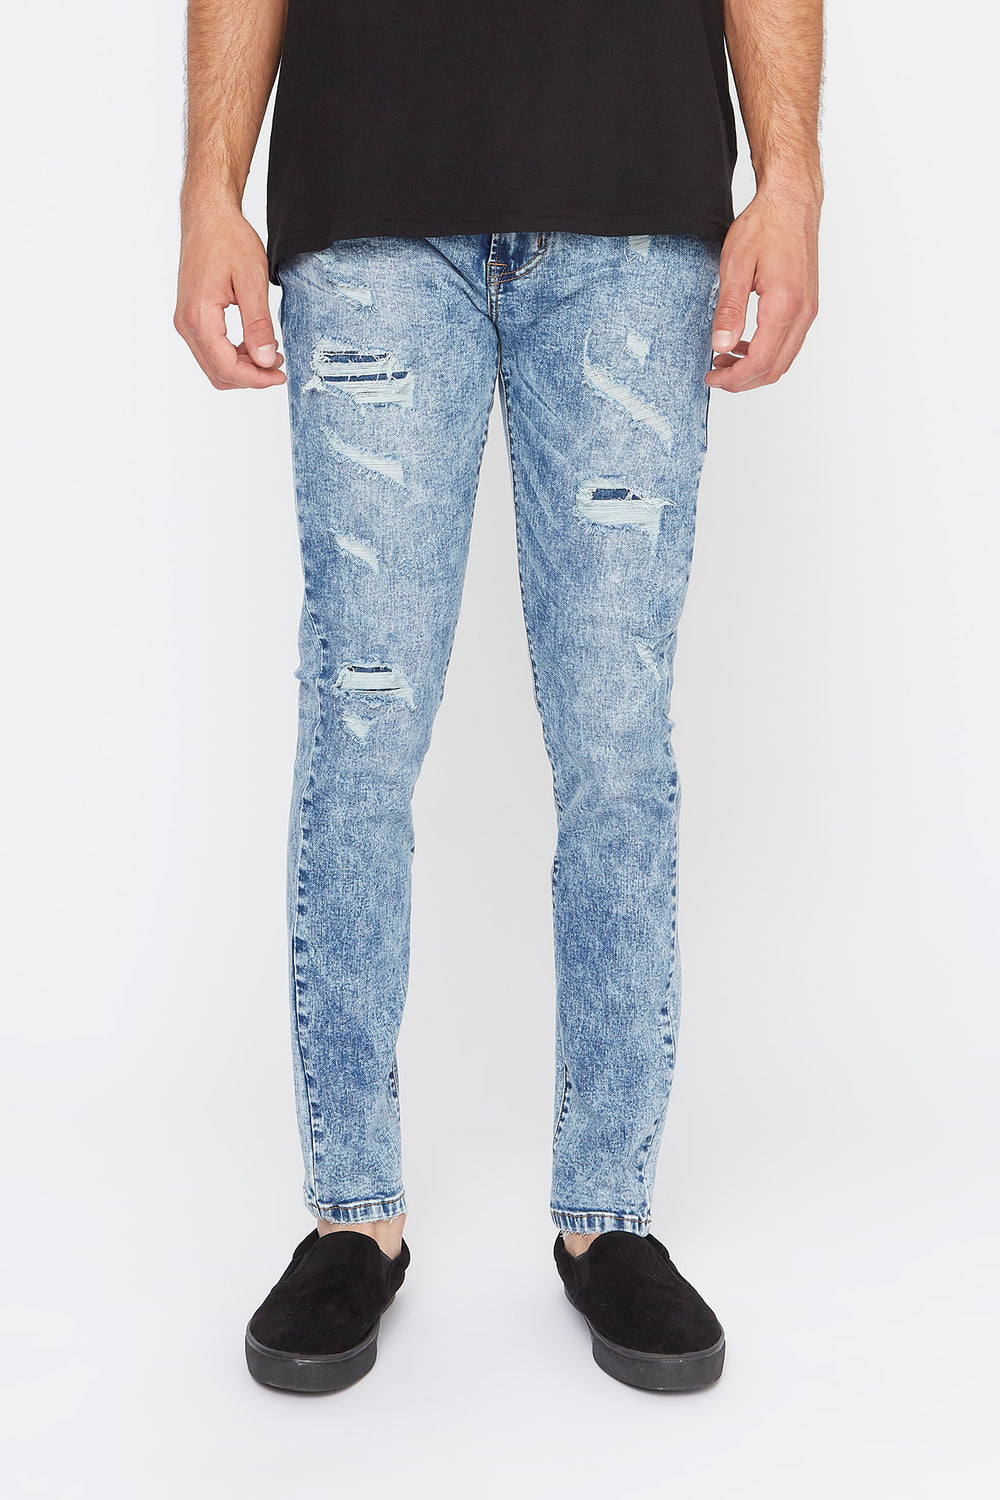 Zoo York Mens Acid Wash Stretch Skinny Jeans Light Denim Blue